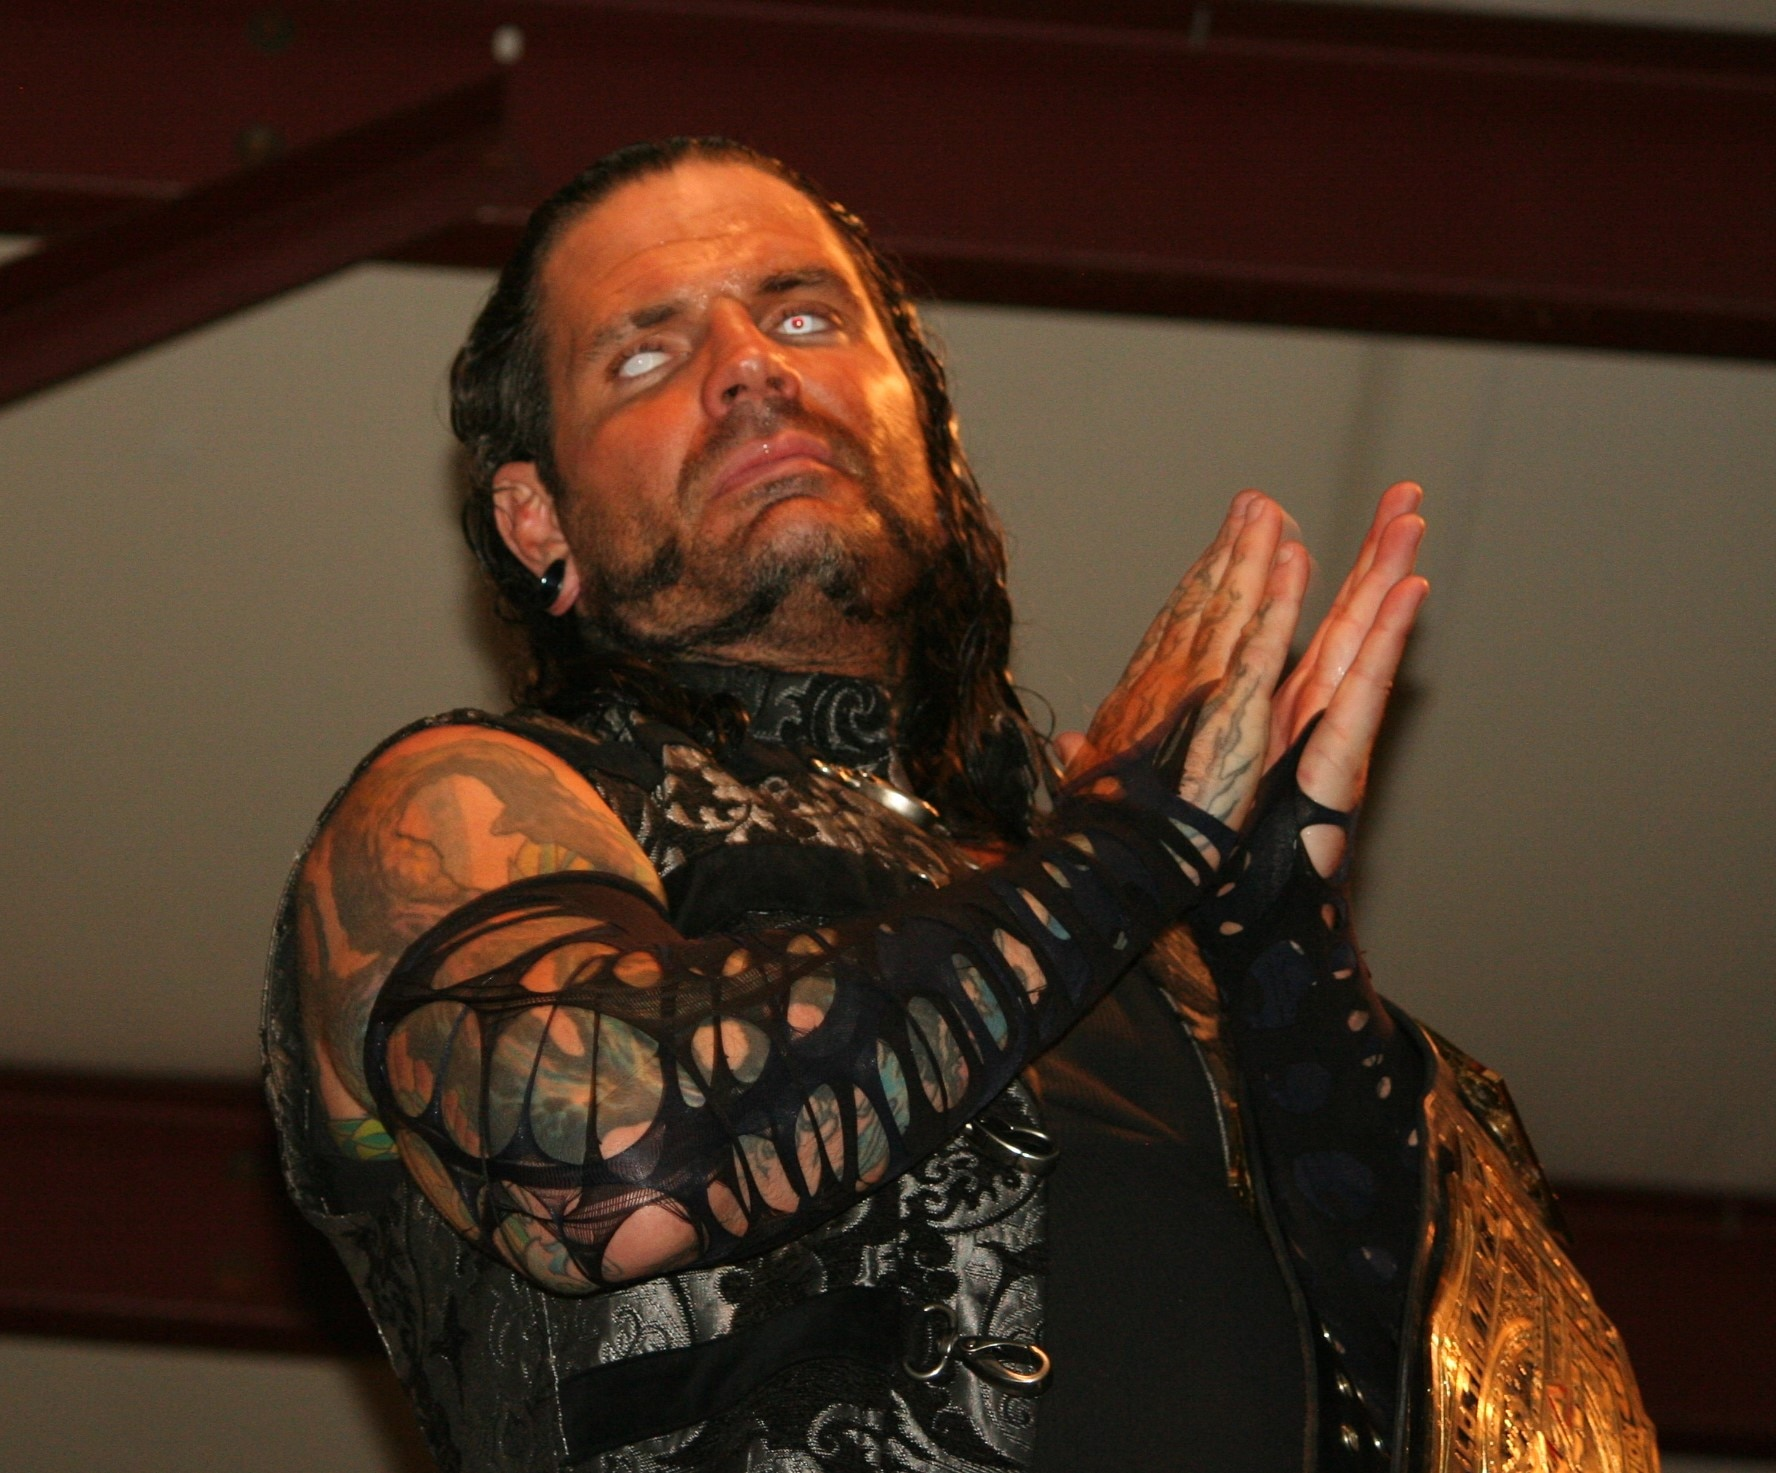 WWE star Jeff Hardy arrested for public intoxication in